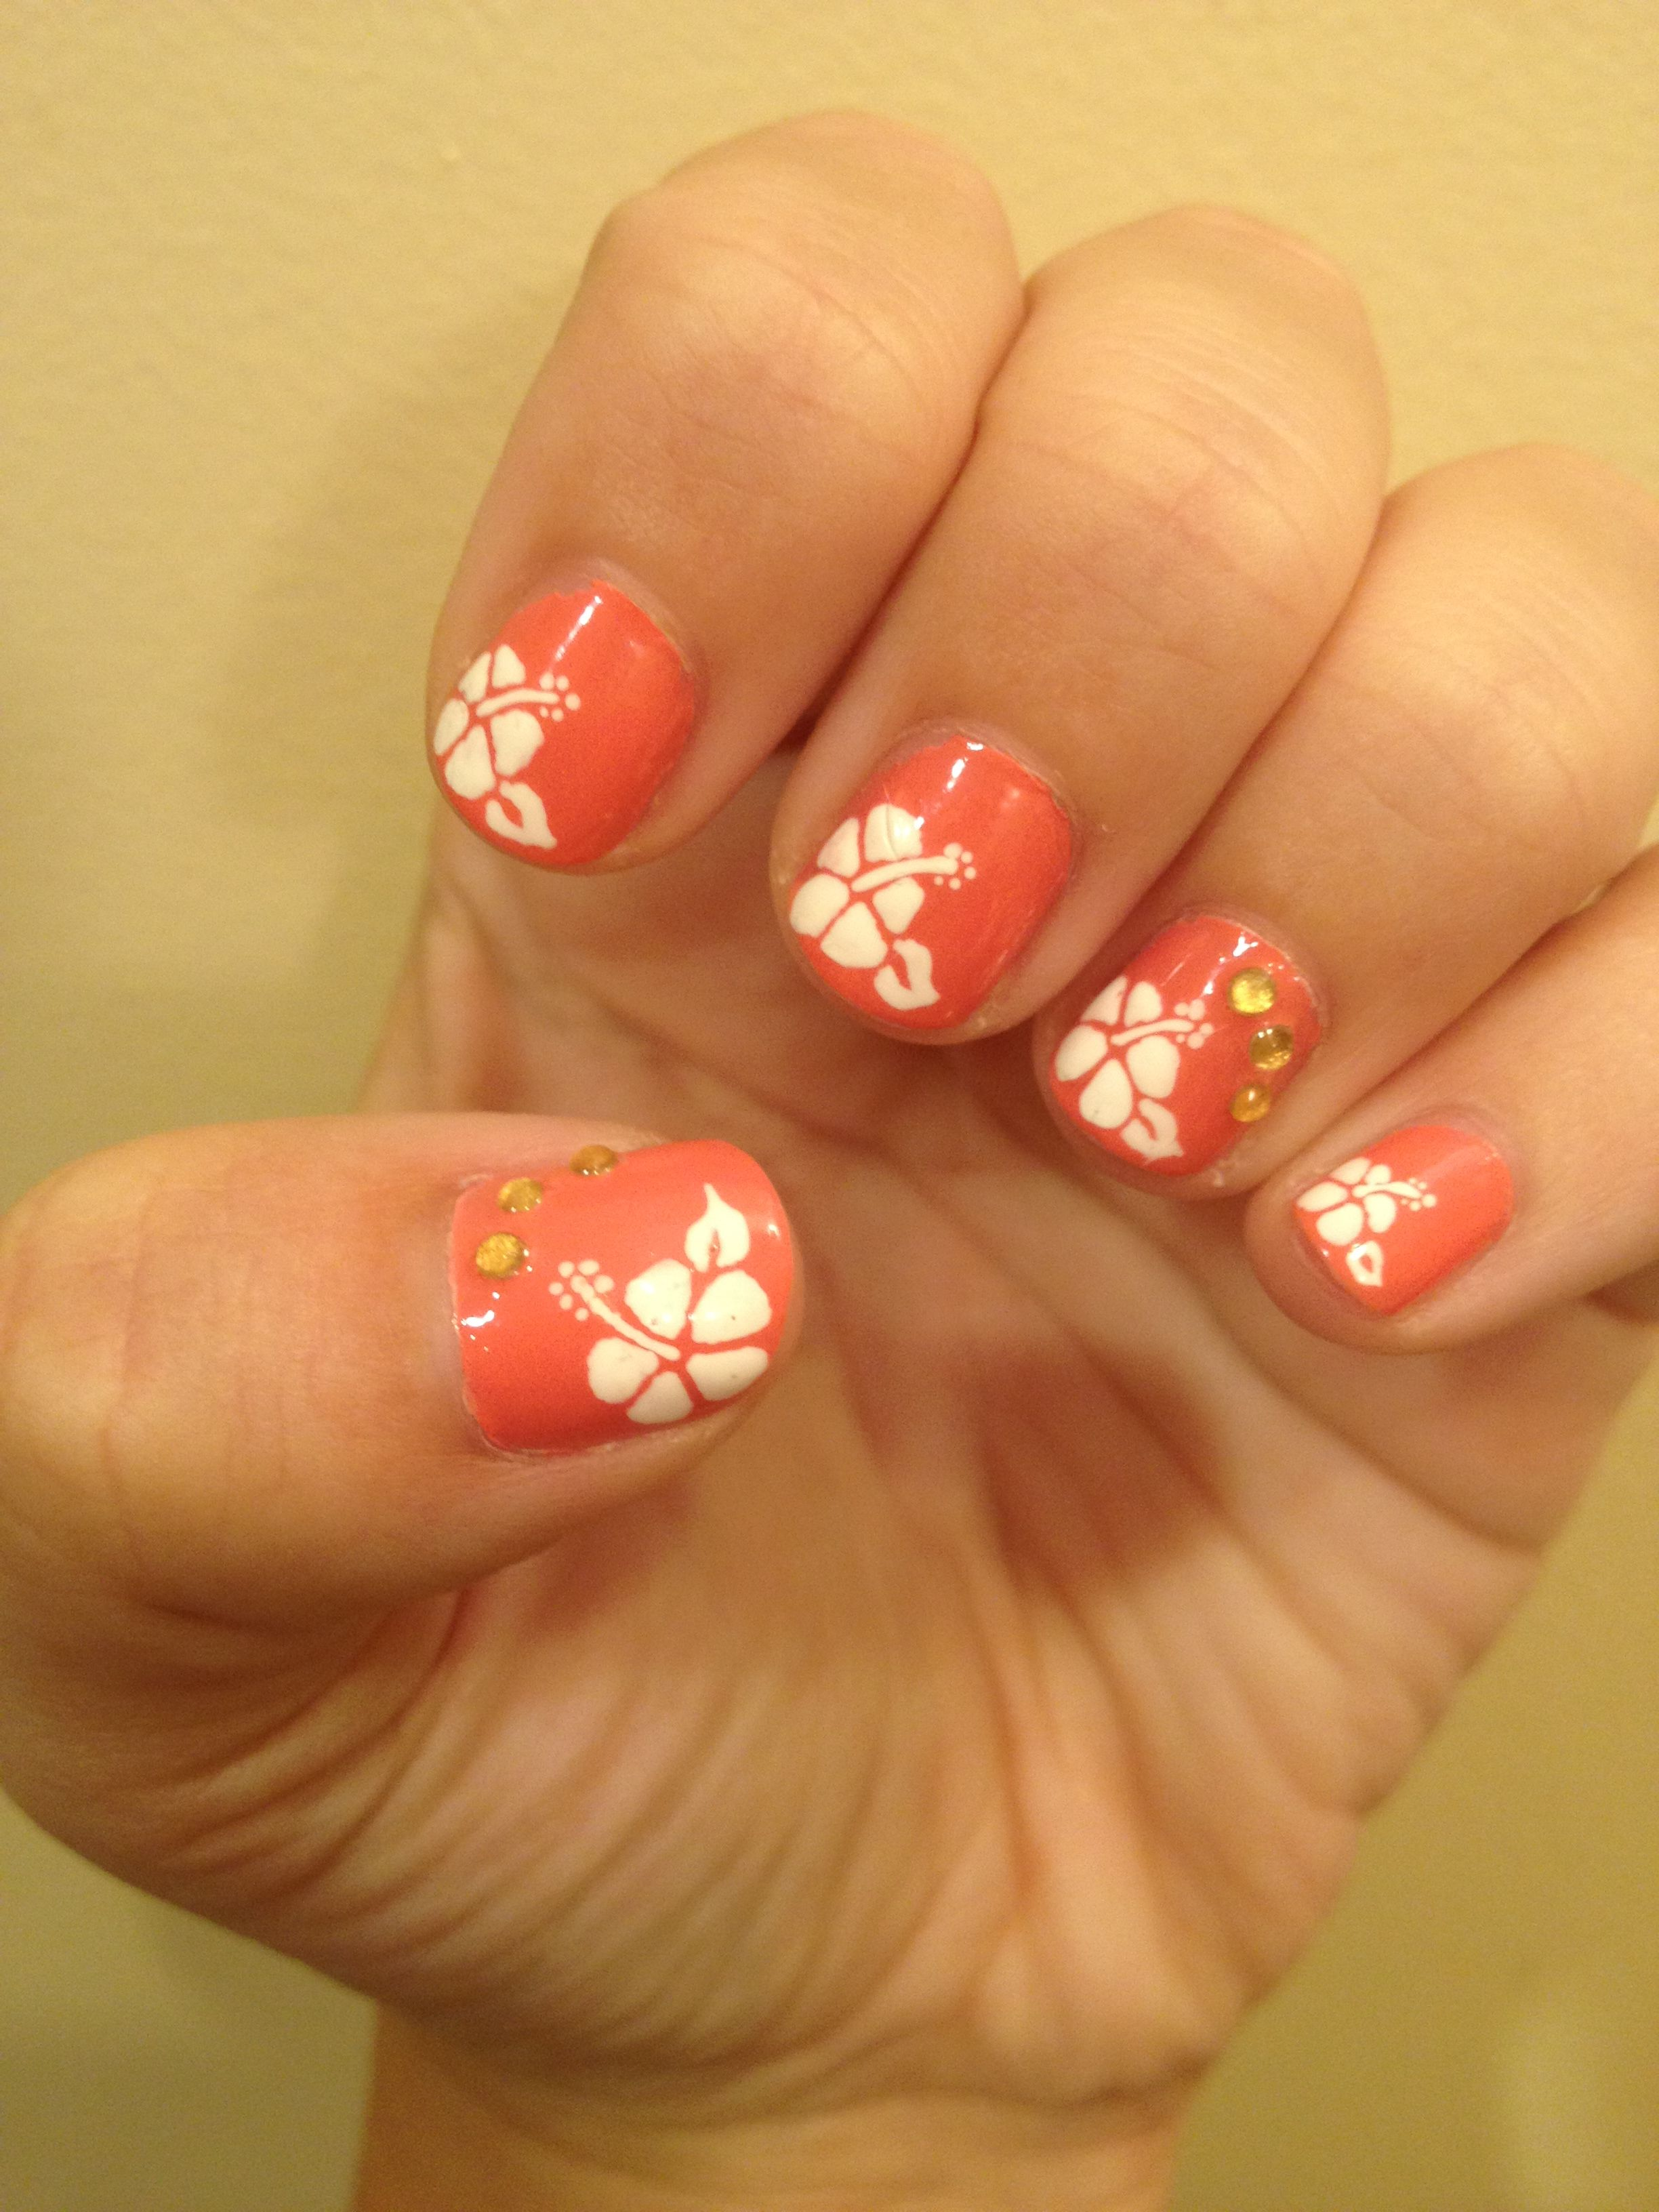 Hibiscus Nails For Hawaii Flower Nails Hawaiian Flower Nails Flower Nail Art